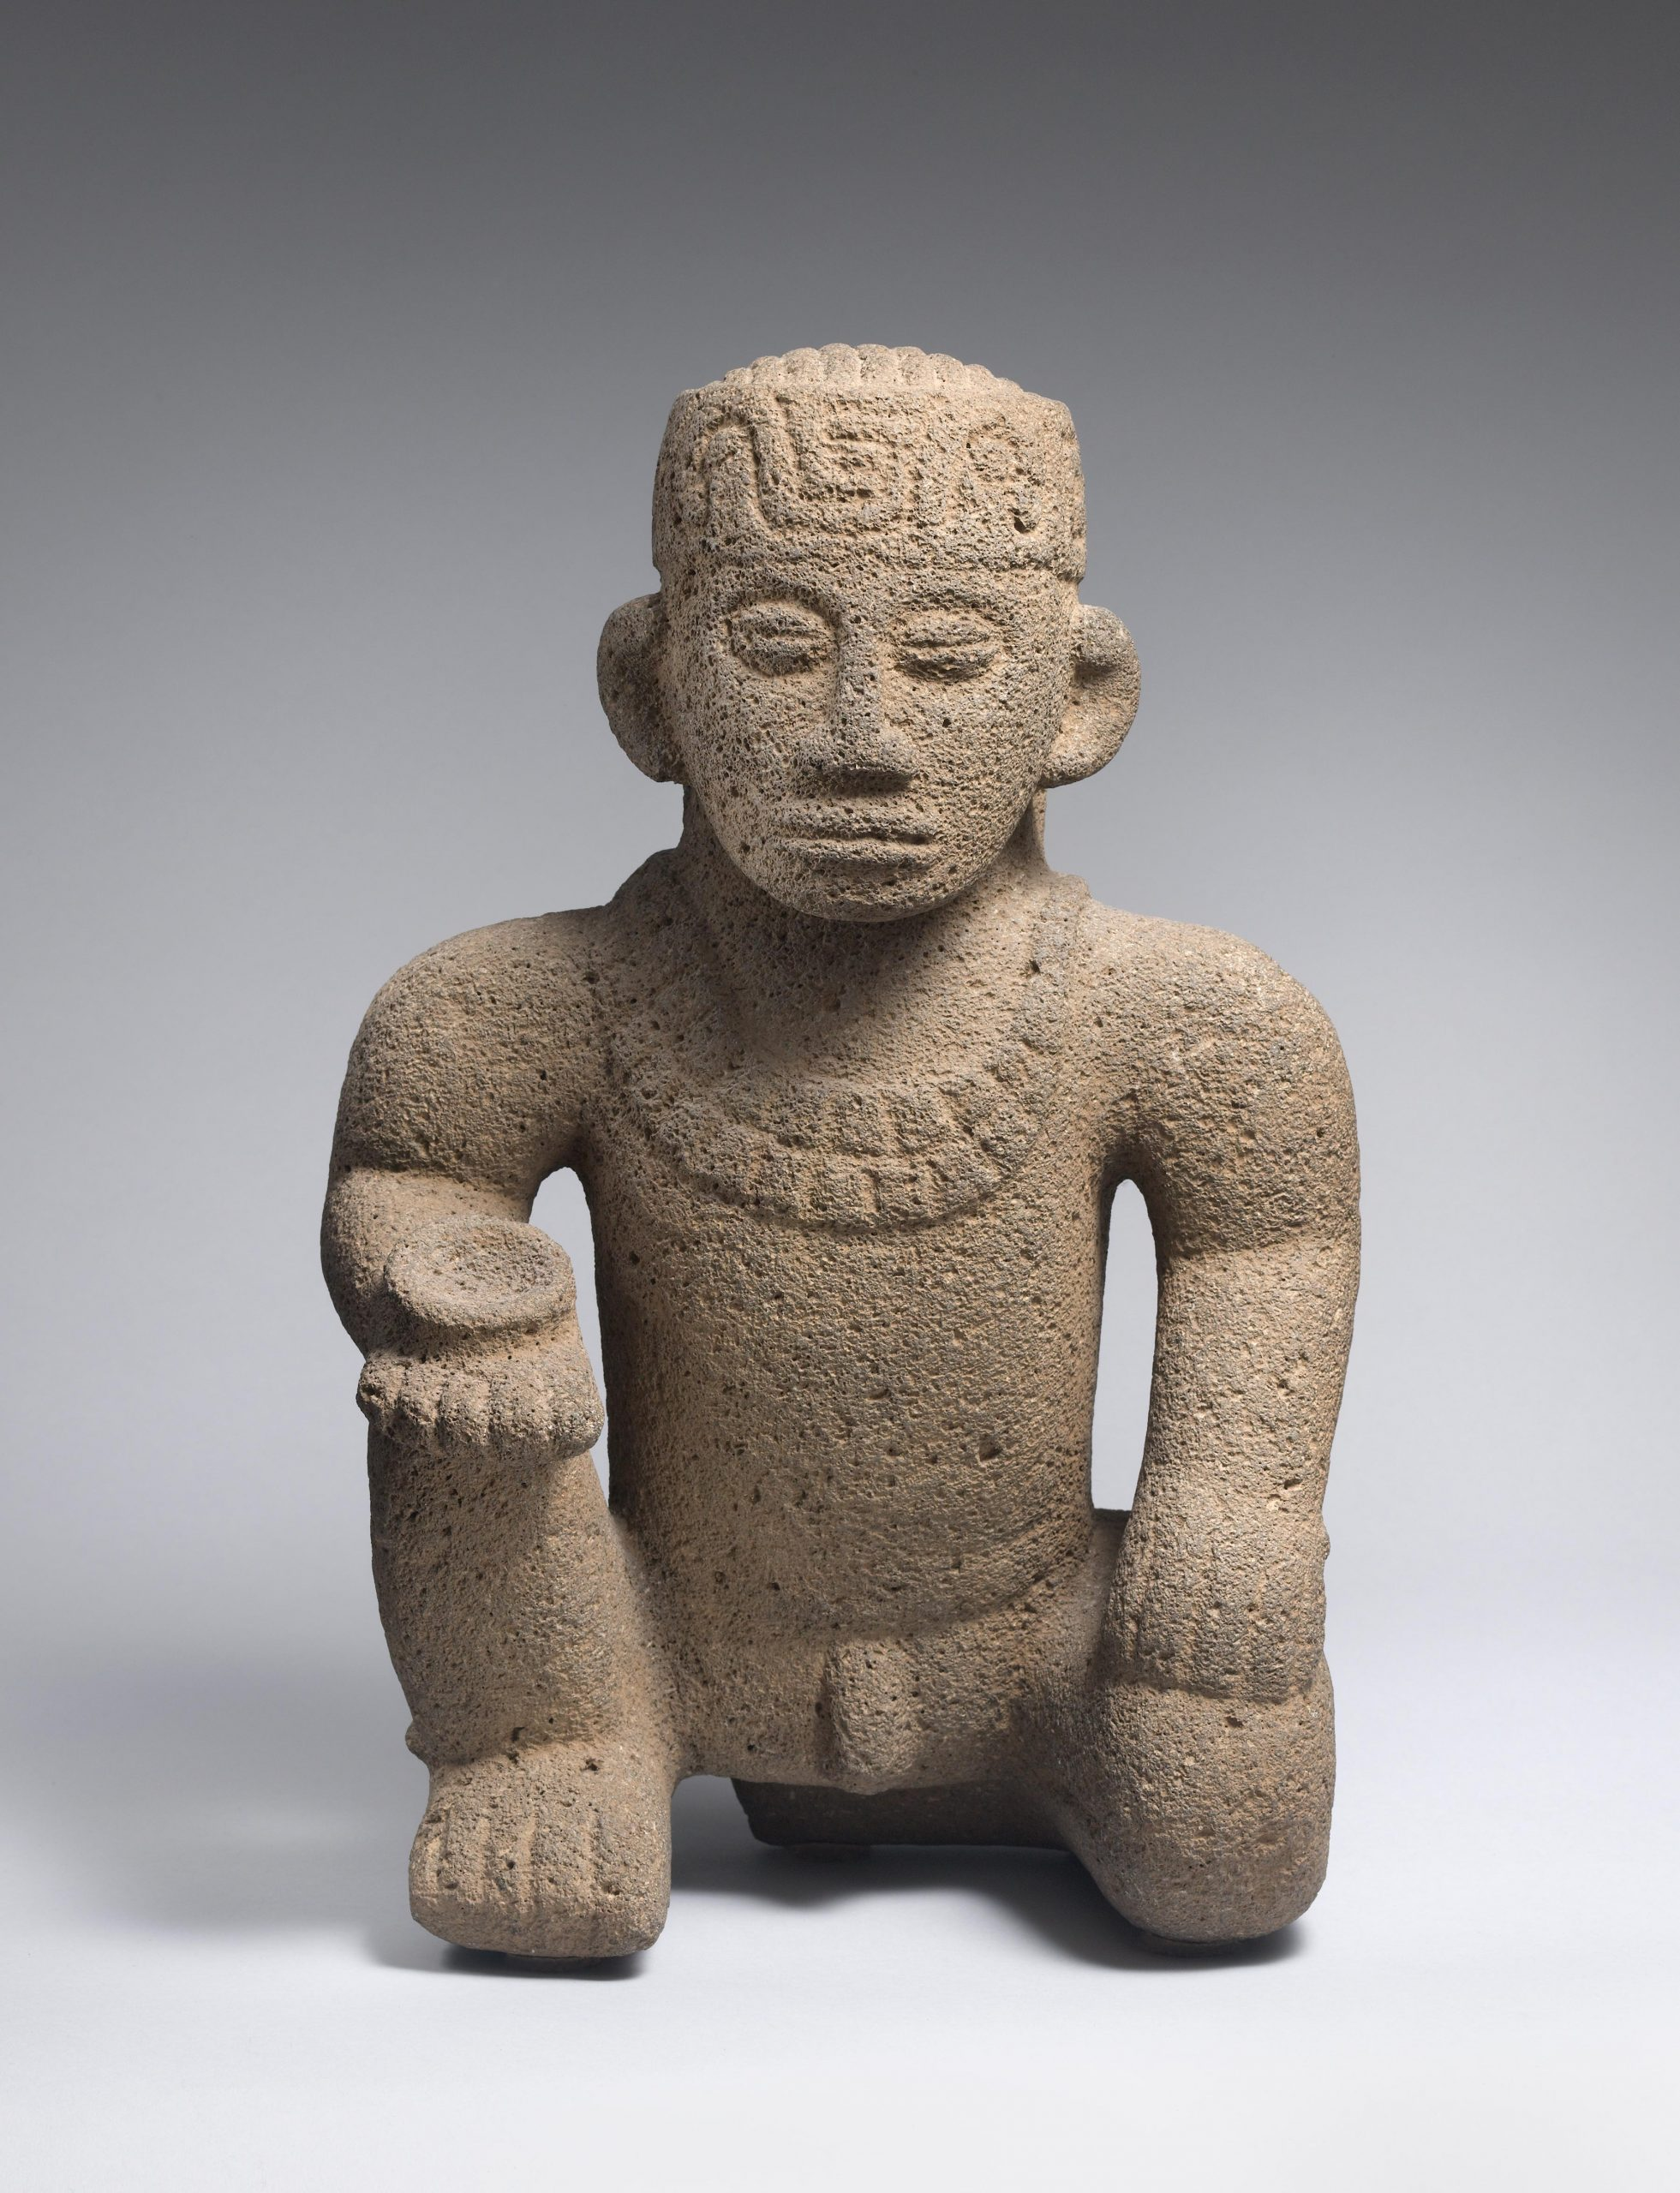 Stone sculpture of man kneeling on one knee, holding a small dish, wearing a beaded necklace and headdress.